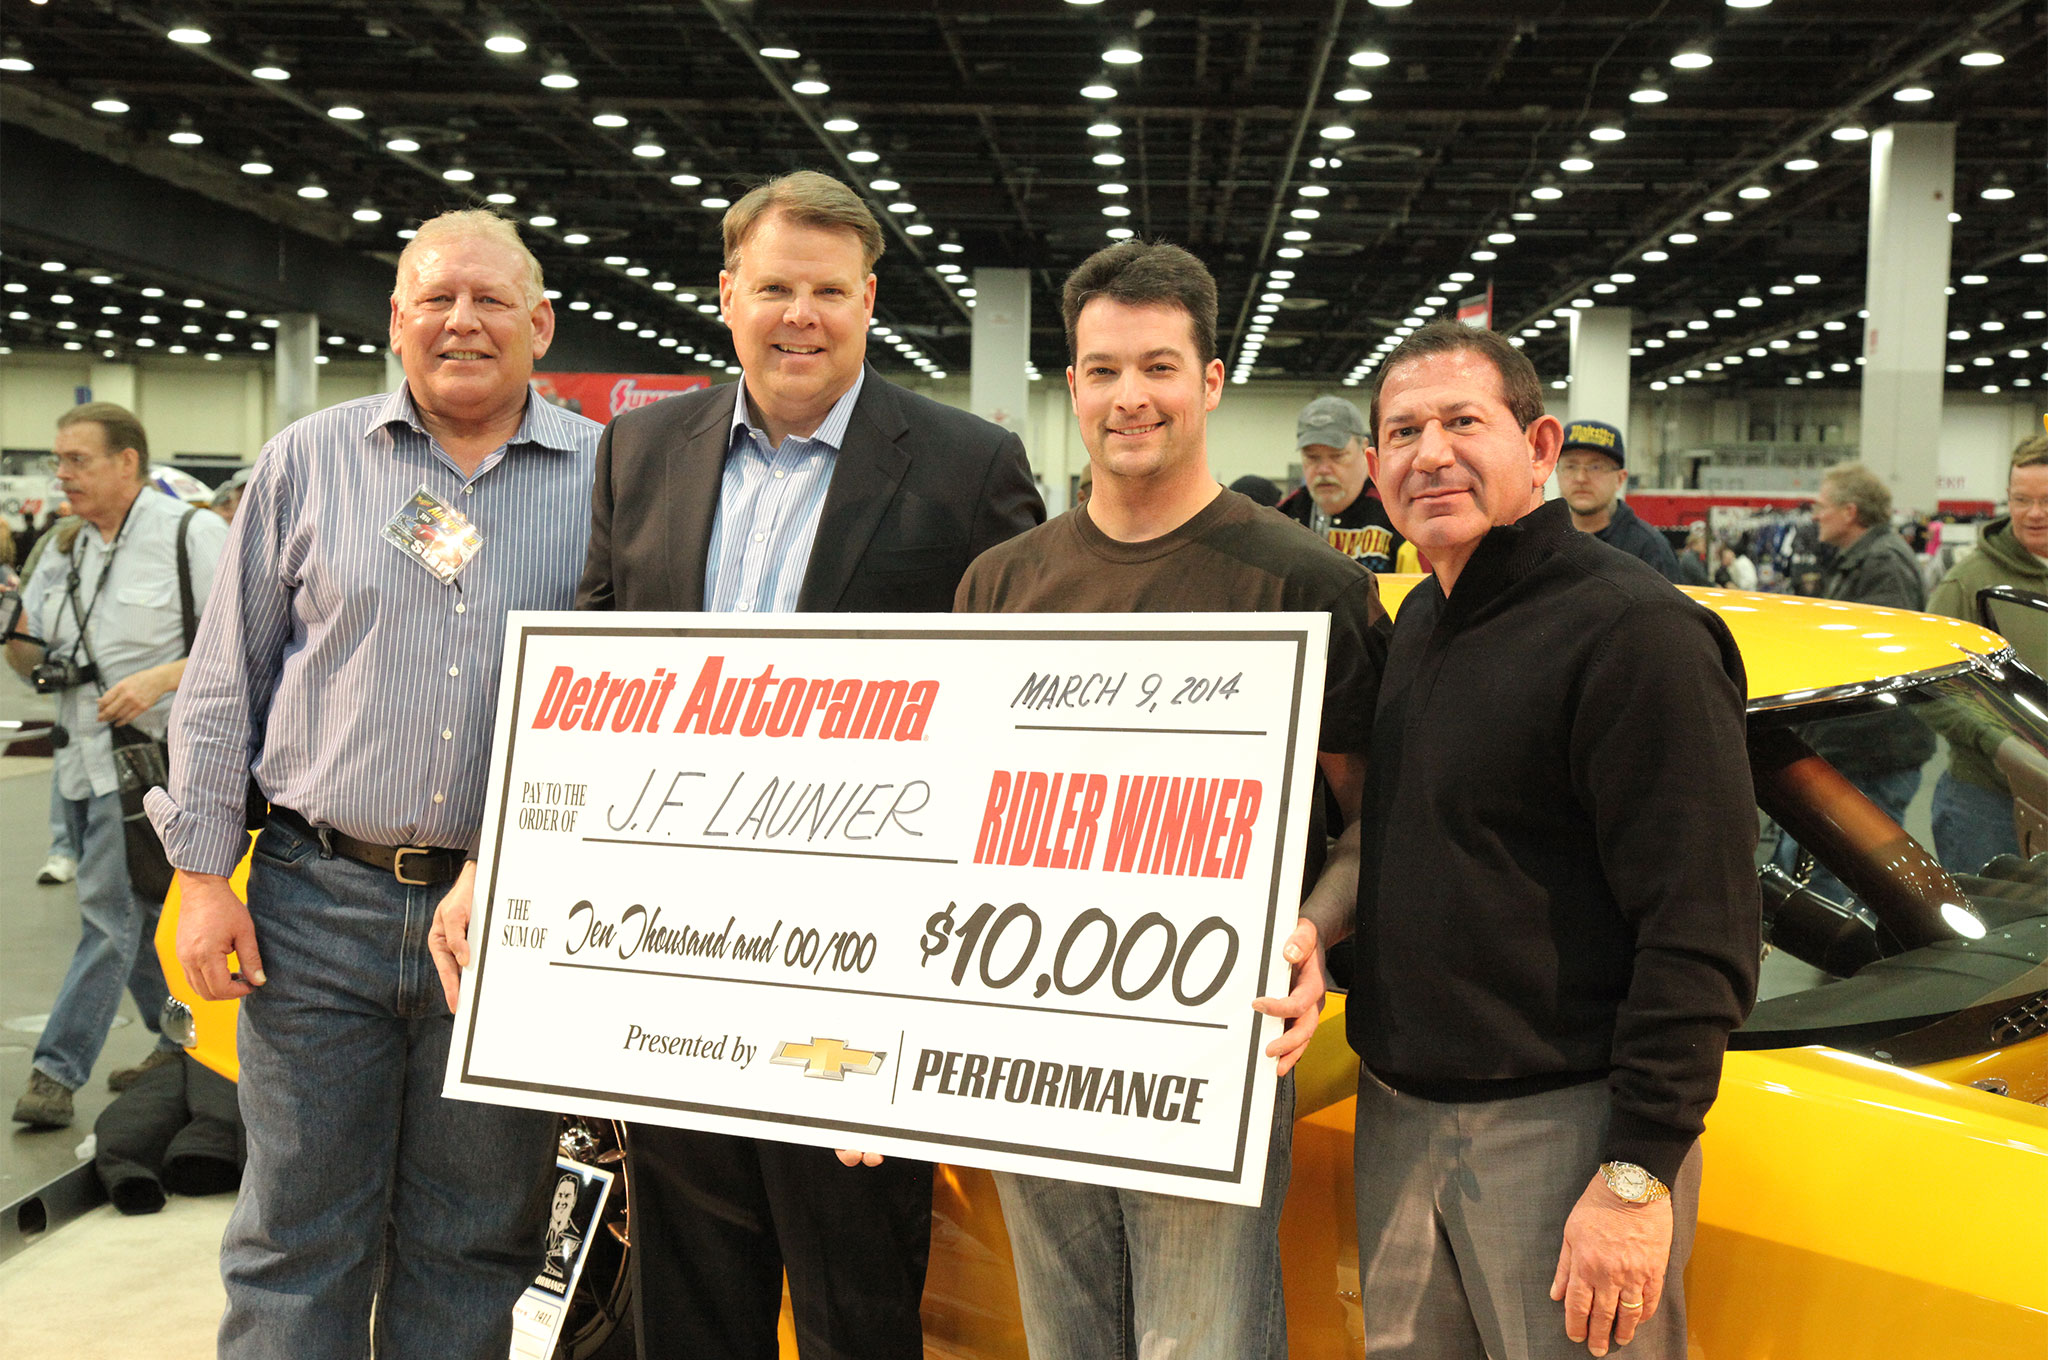 Launier, second from right, is presented with a $10,000 check by (from the left) Michigan Hot Rod Association's president, Butch Patrico, the U.S. Vice President of Performance Vehicles and Motorsports for General Motors Corporation, Jim Campbell, and Championship Auto Shows' president, Pete Toundas.